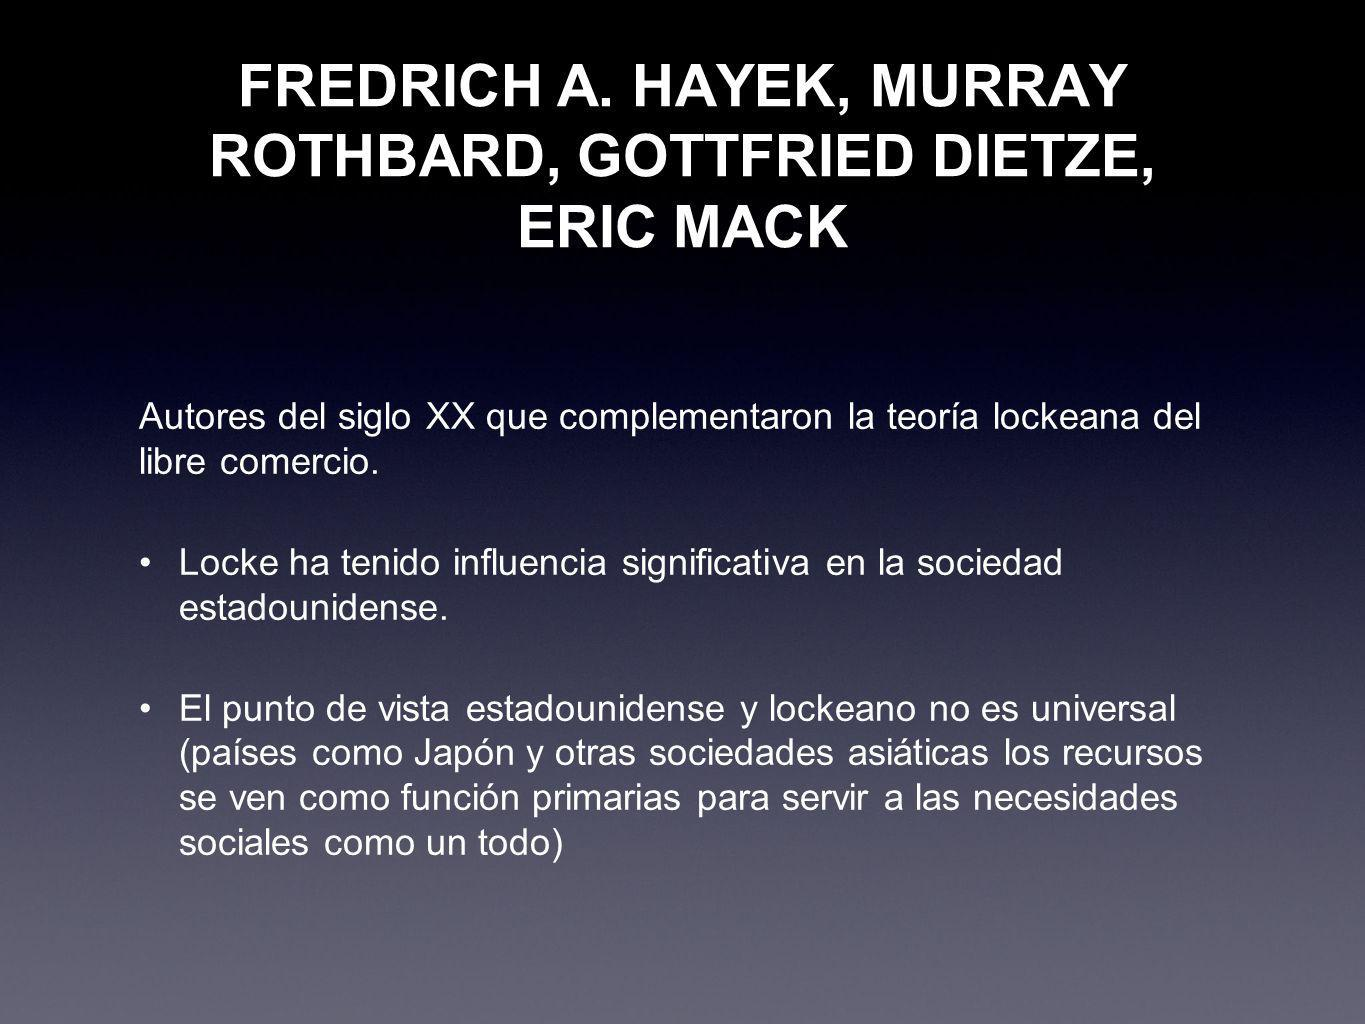 FREDRICH A. HAYEK, MURRAY ROTHBARD, GOTTFRIED DIETZE, ERIC MACK